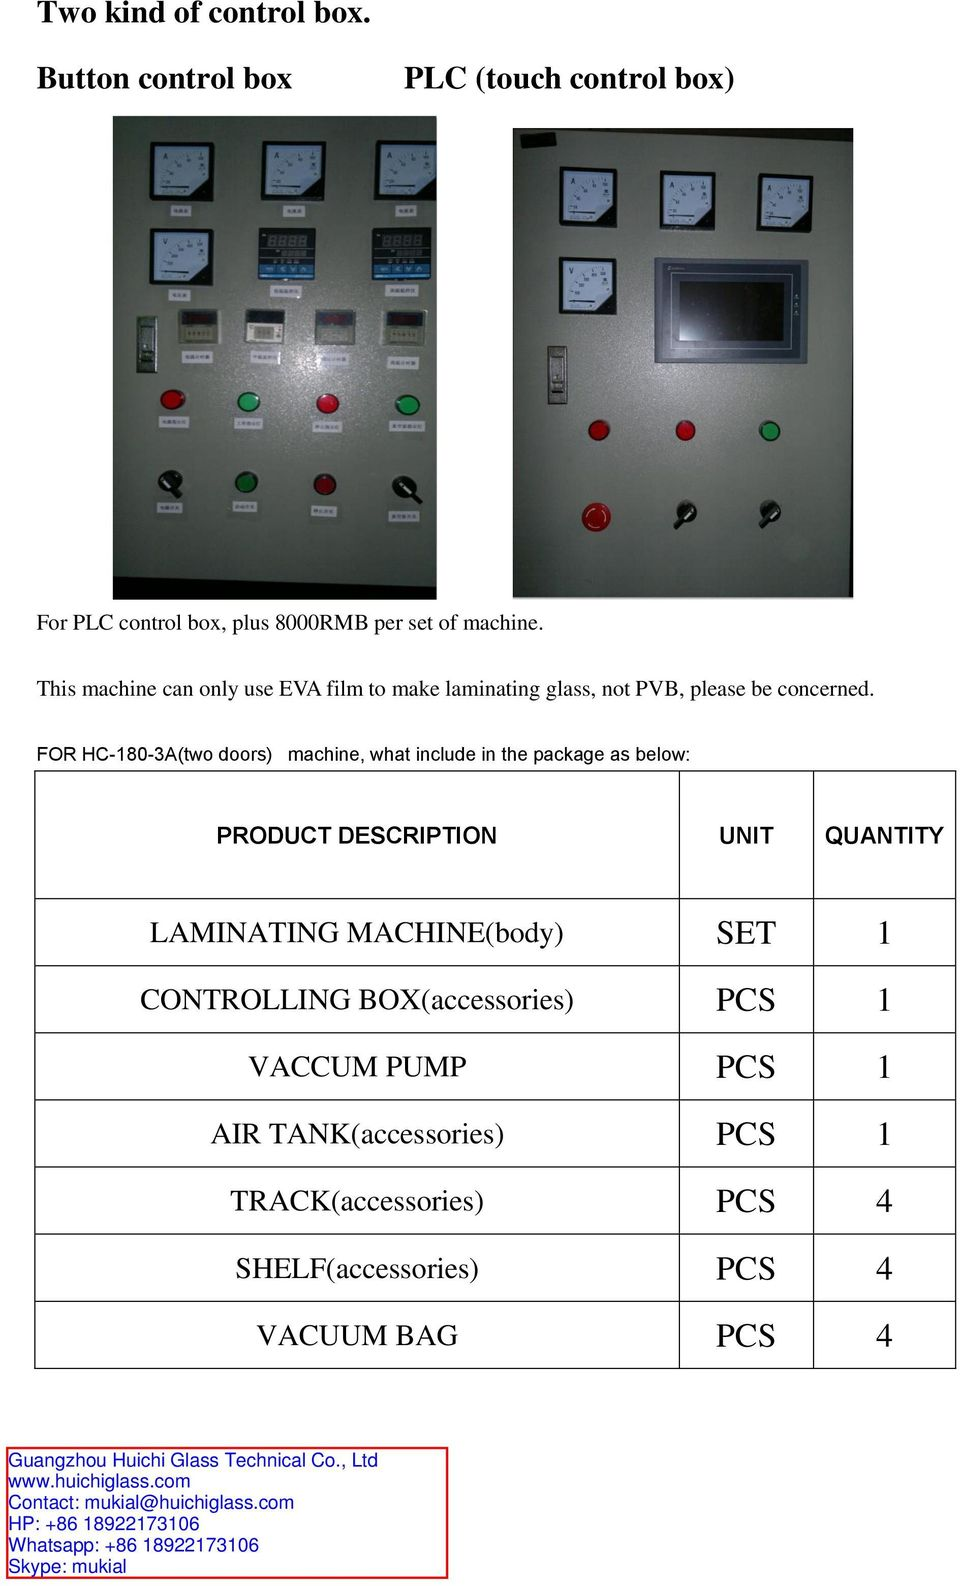 FOR HC-180-3A(two doors) machine, what include in the package as below: PRODUCT DESCRIPTION UNIT QUANTITY LAMINATING